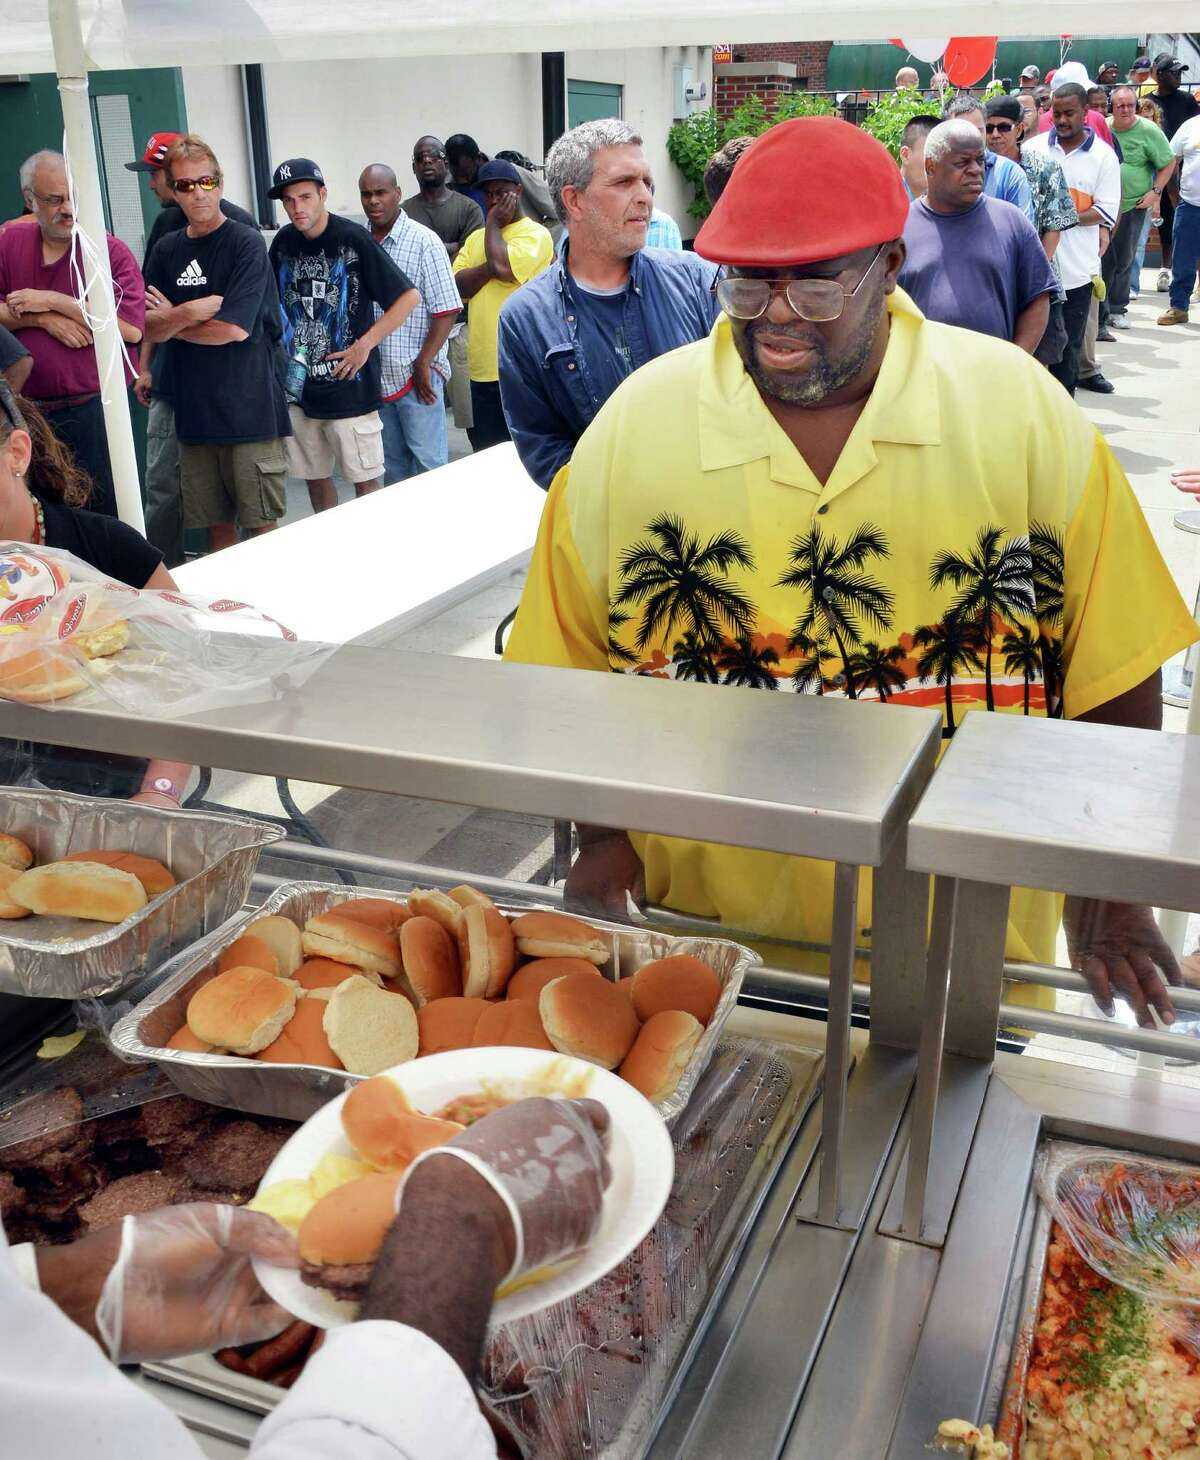 Ike Carter of Albany helps celebrate the Fourth of July at the Capital City Rescue Mission's holiday picnic and health fair in Albany Wednesday July 4, 2012. (John Carl D'Annibale / Times Union)